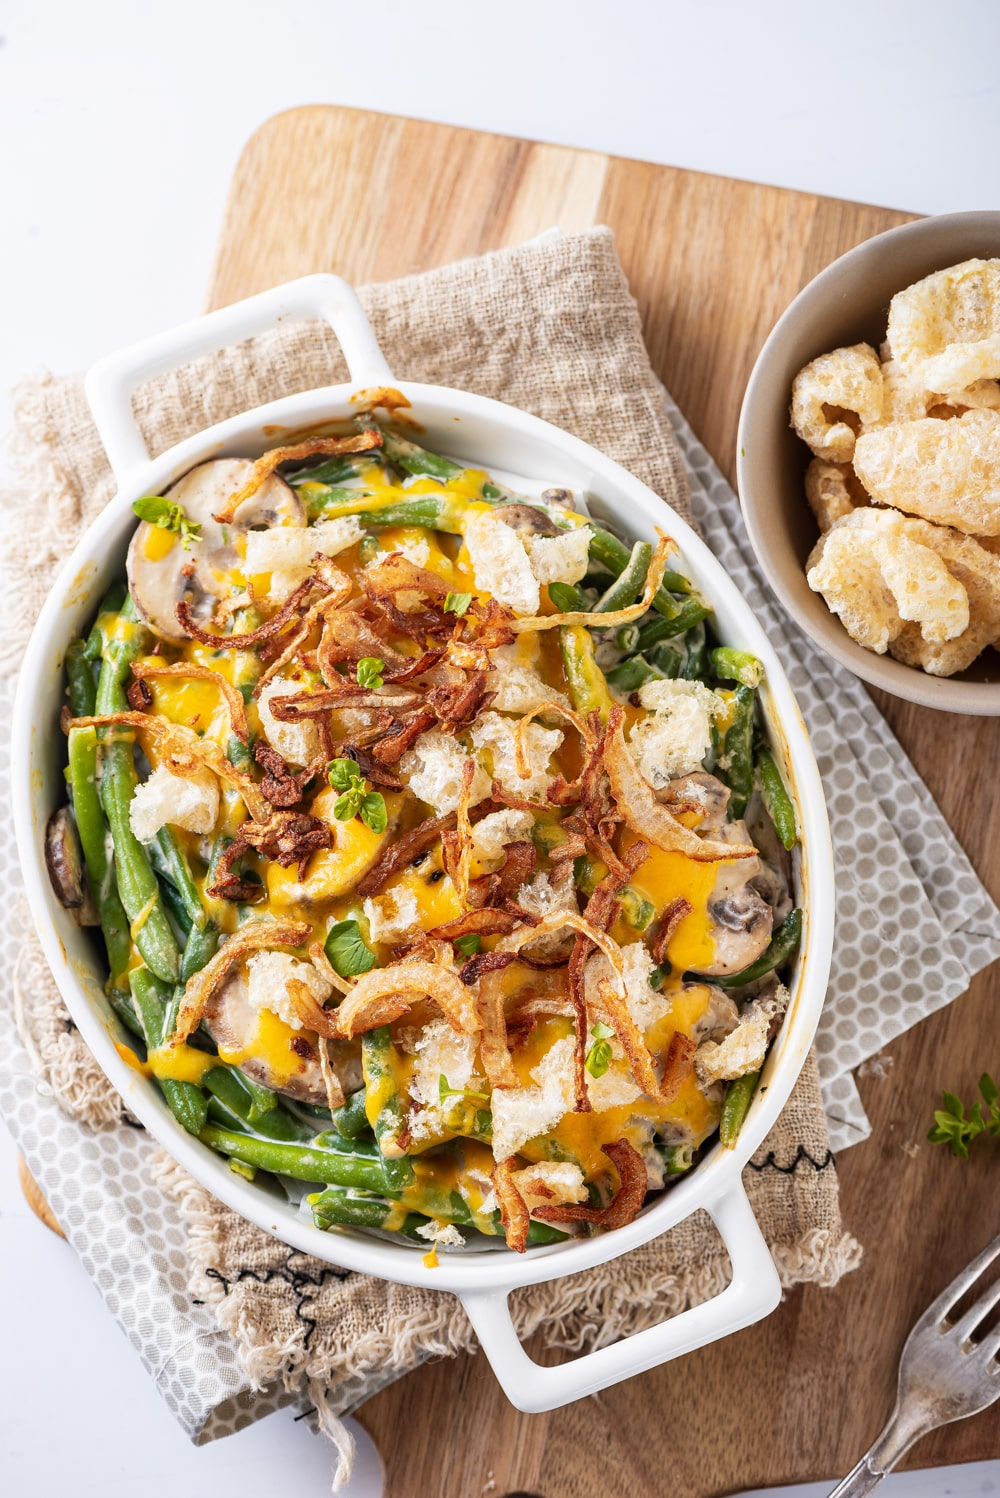 Keto Green Bean Casserole | One Of The BEST Low Carb Keto Casserole Recipes